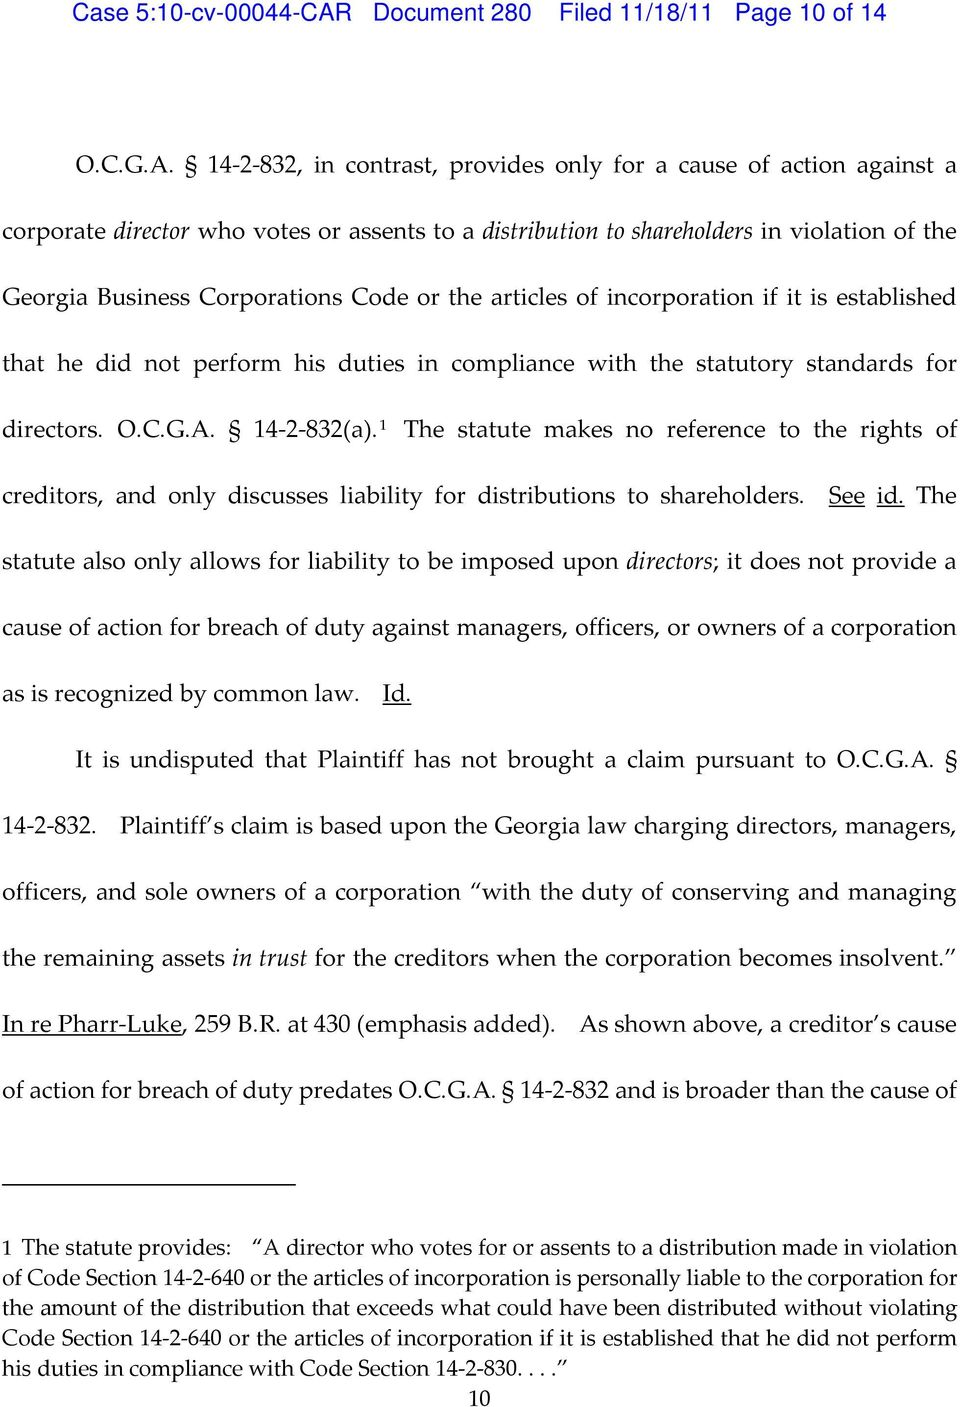 14 2 832, in contrast, provides only for a cause of action against a corporate director who votes or assents to a distribution to shareholders in violation of the Georgia Business Corporations Code